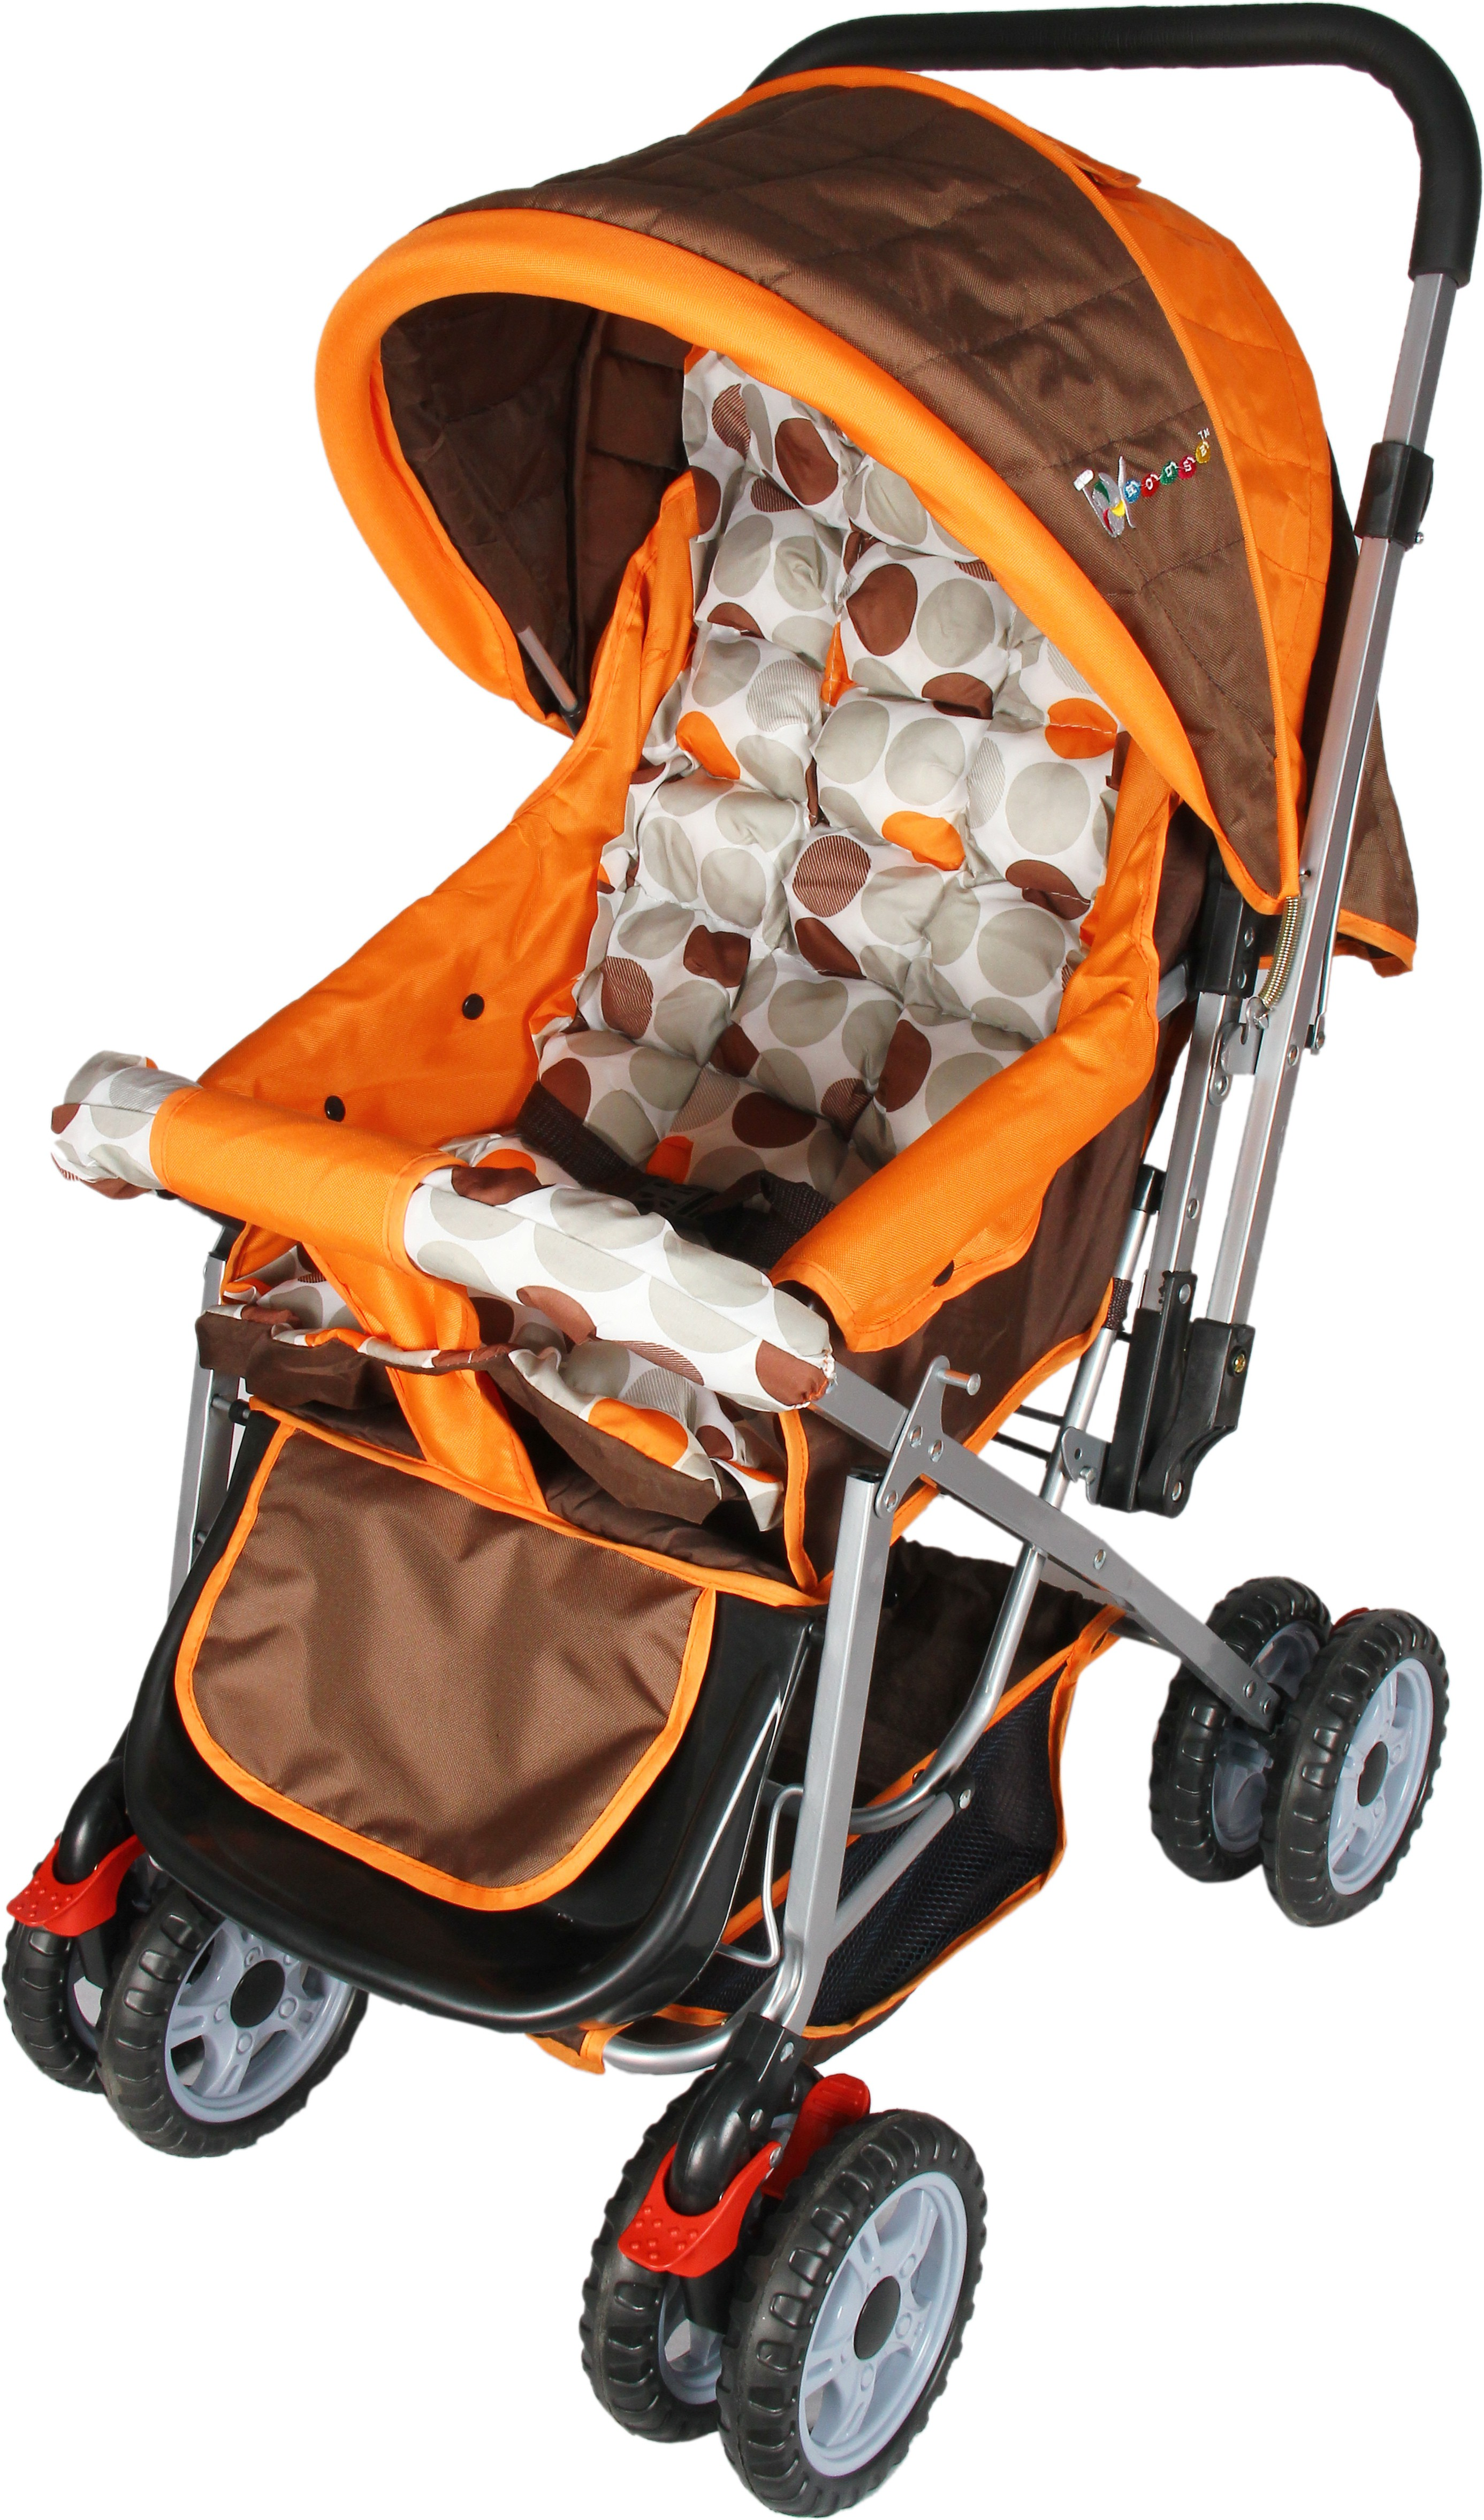 Deals - Bangalore - Strollers. <br> Luvlap, Chicco.<br> Category - baby_care<br> Business - Flipkart.com